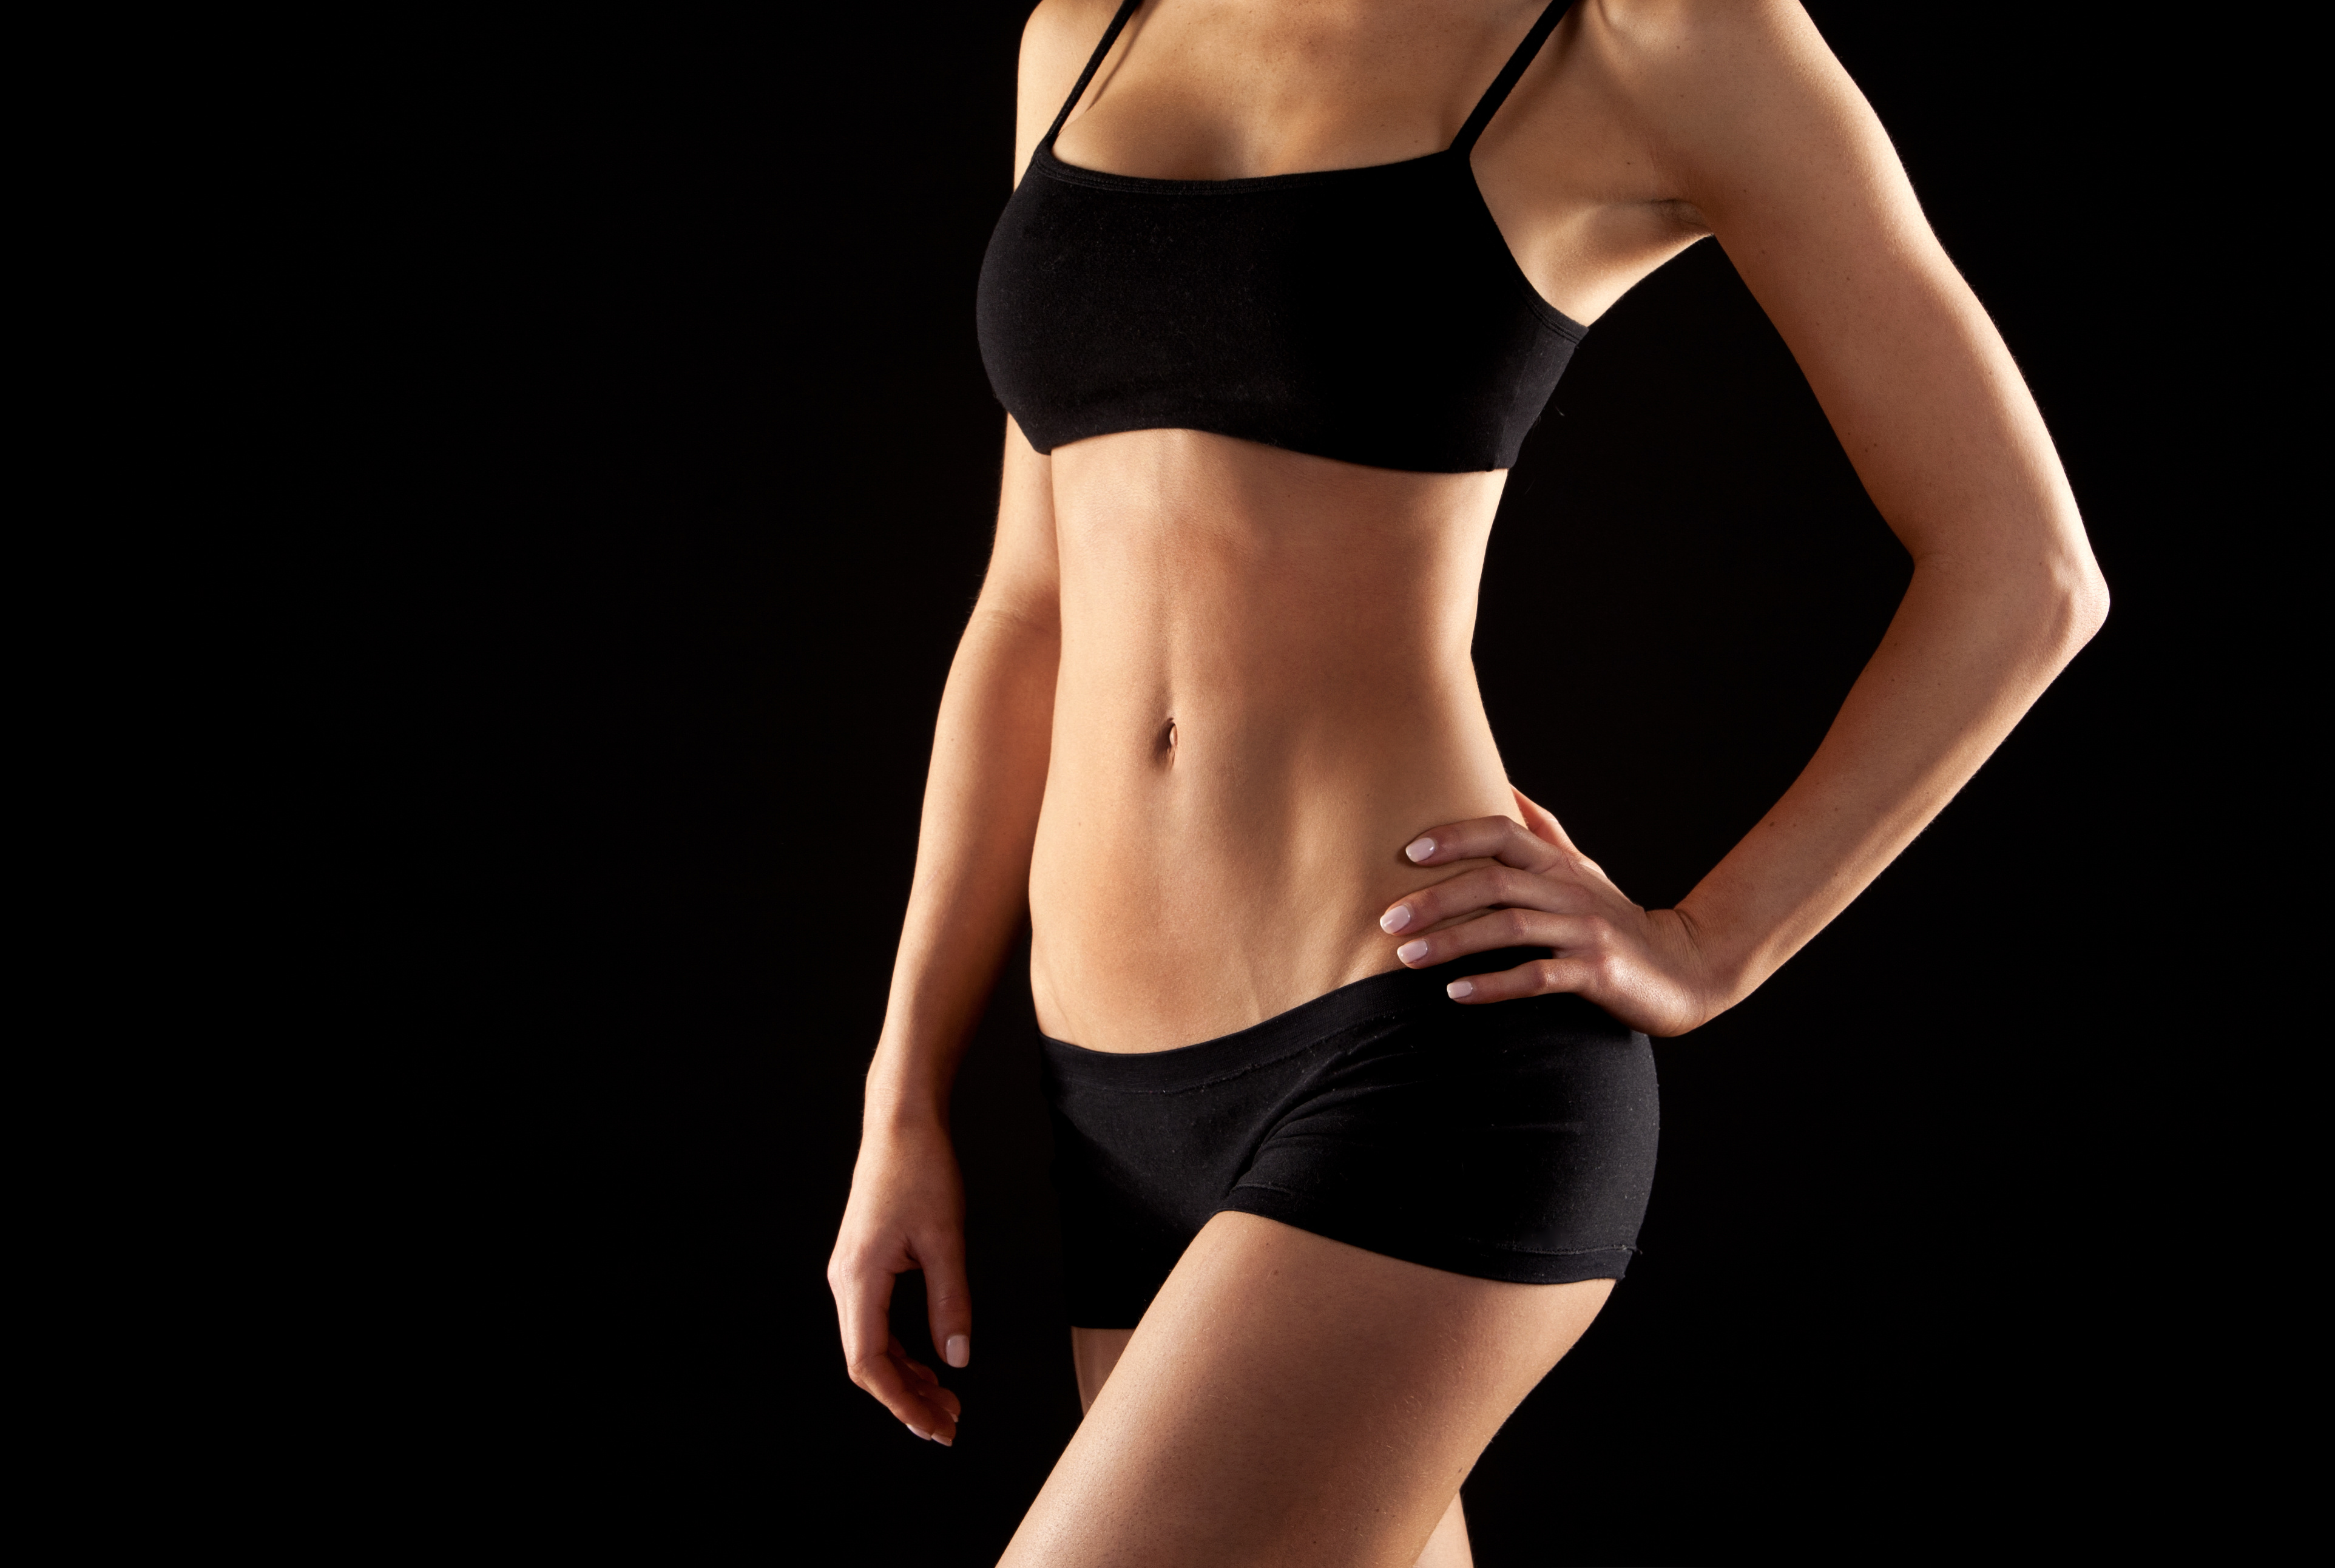 Liposuction Plastic Surgery Before and After Photos